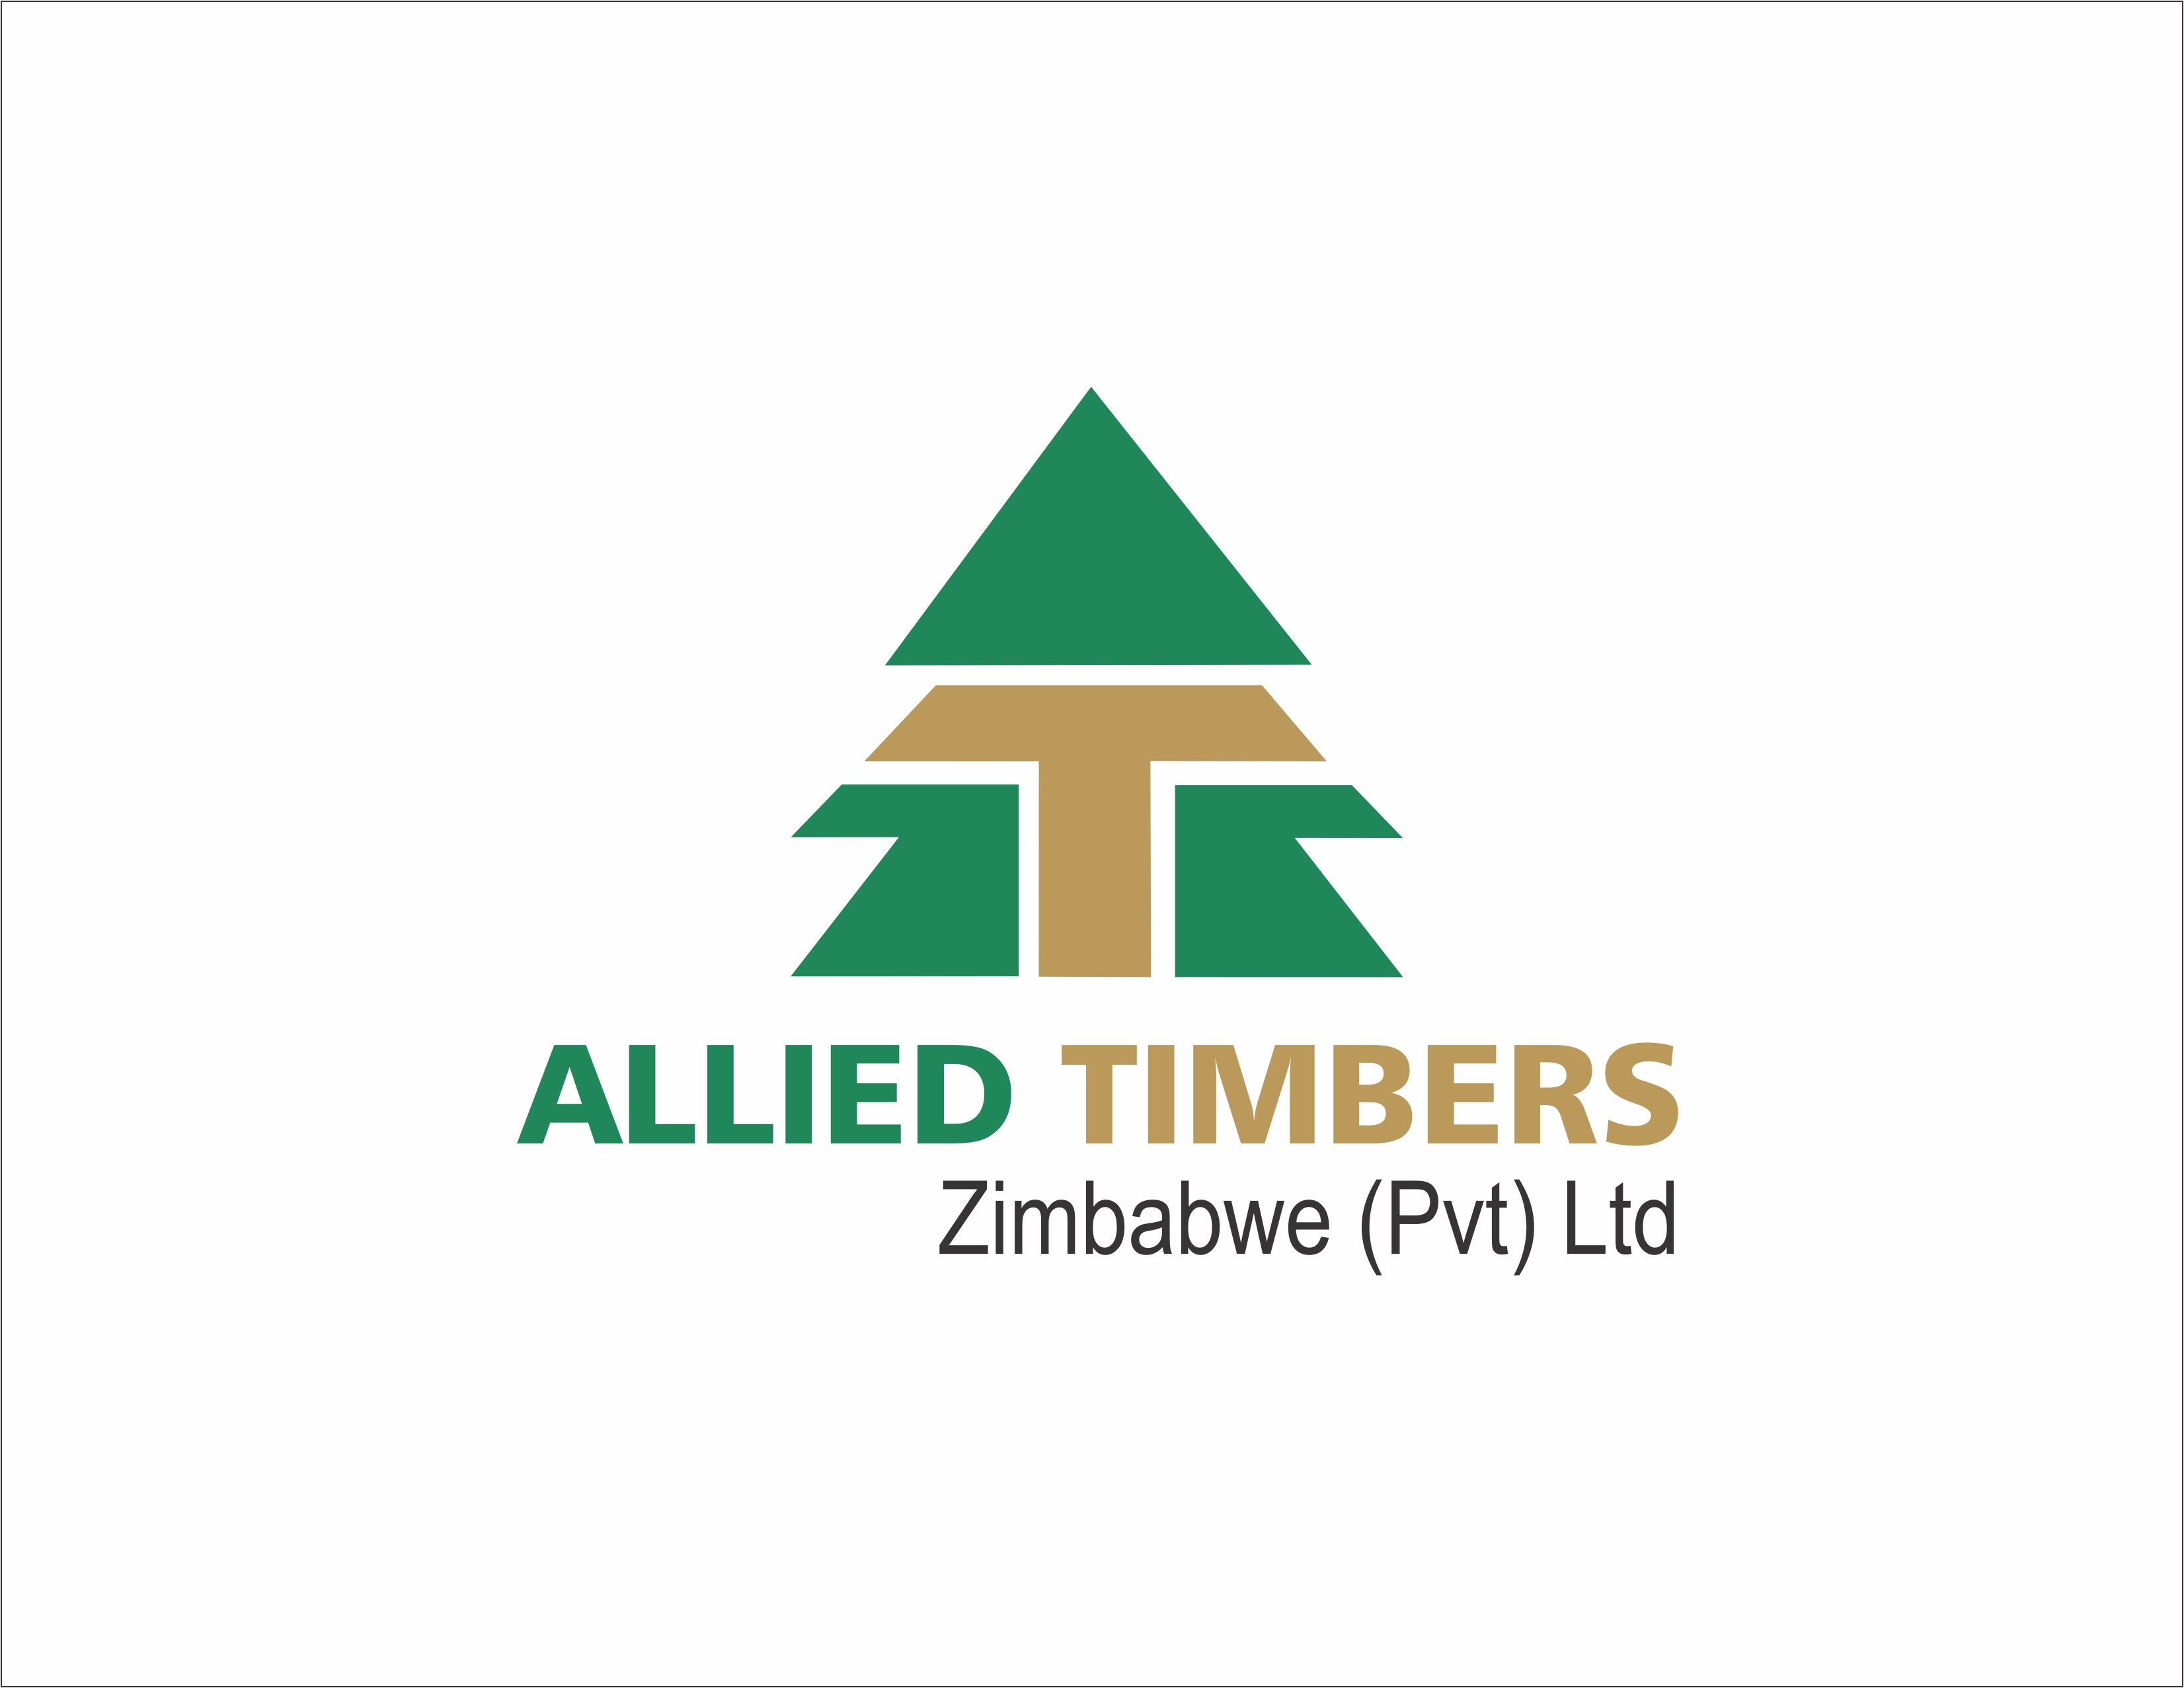 Allied Timbers